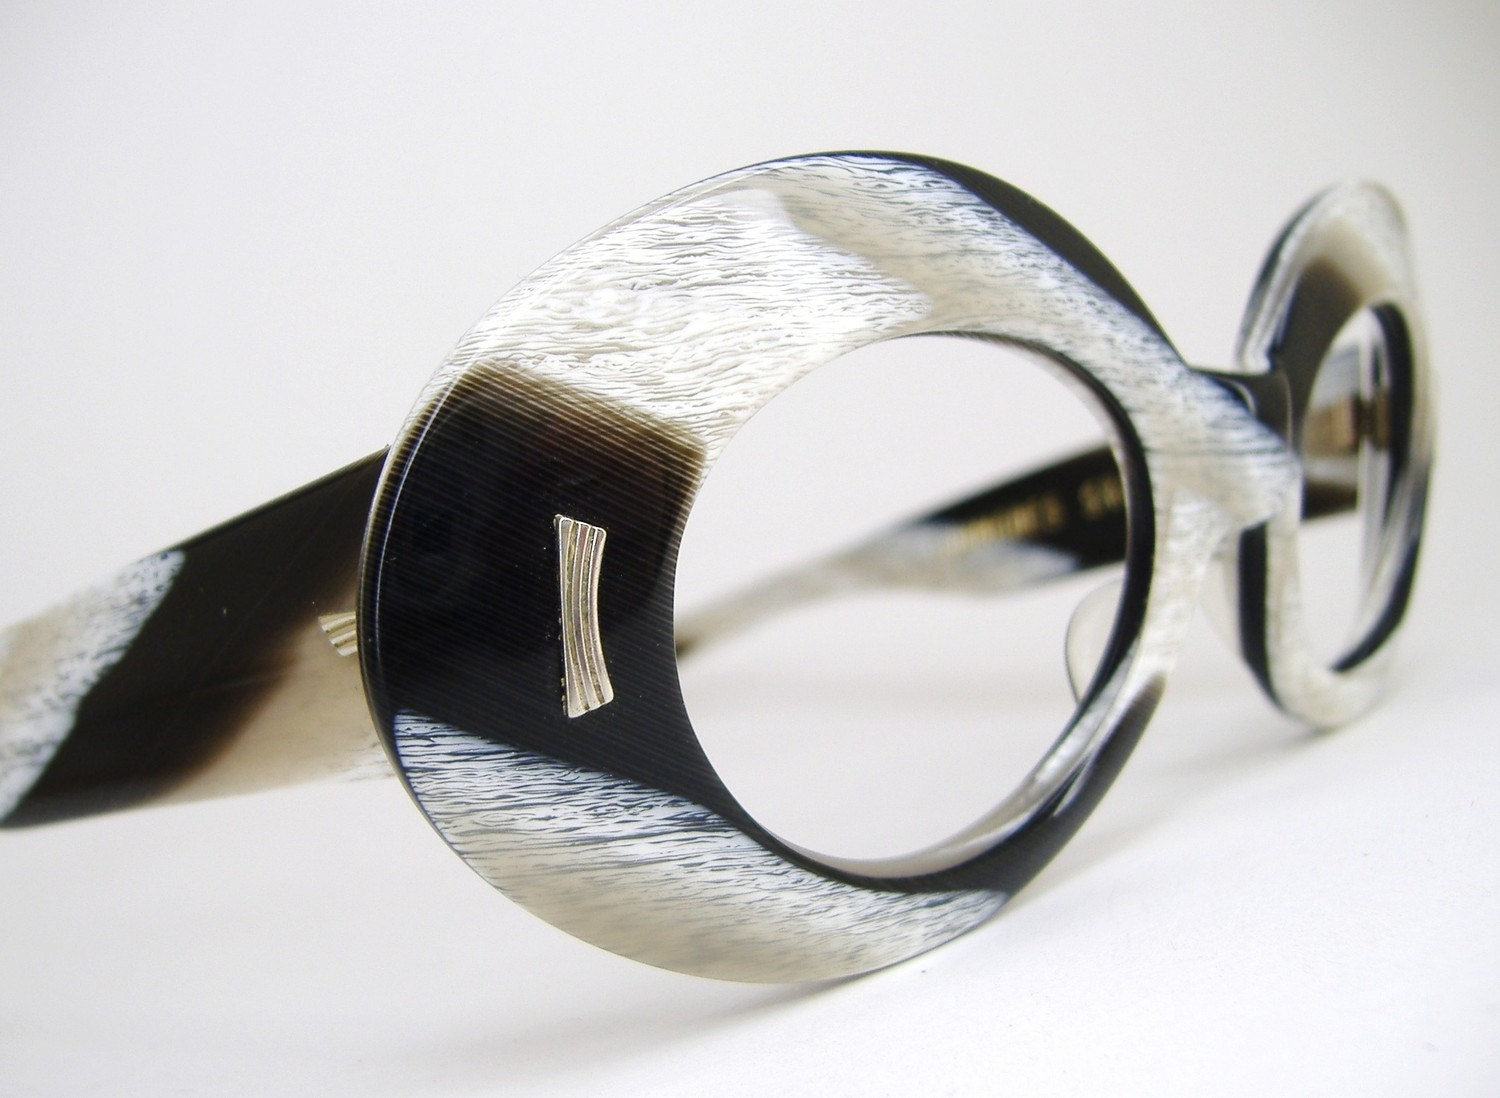 unique vintage 1960s 70s eyeglasses sunglasses frame